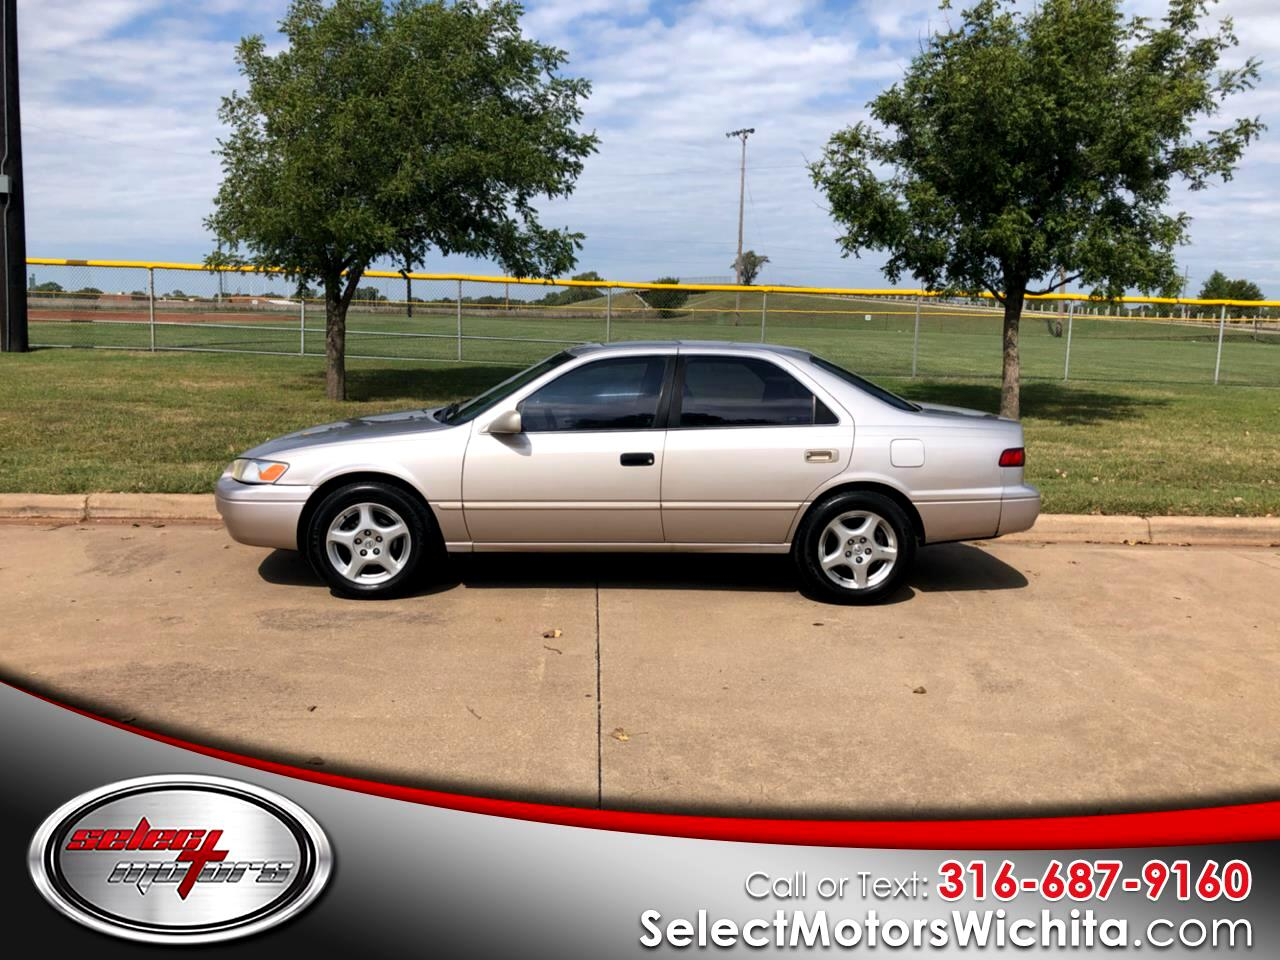 1998 Toyota Camry 4dr Sdn XLE V6 Auto